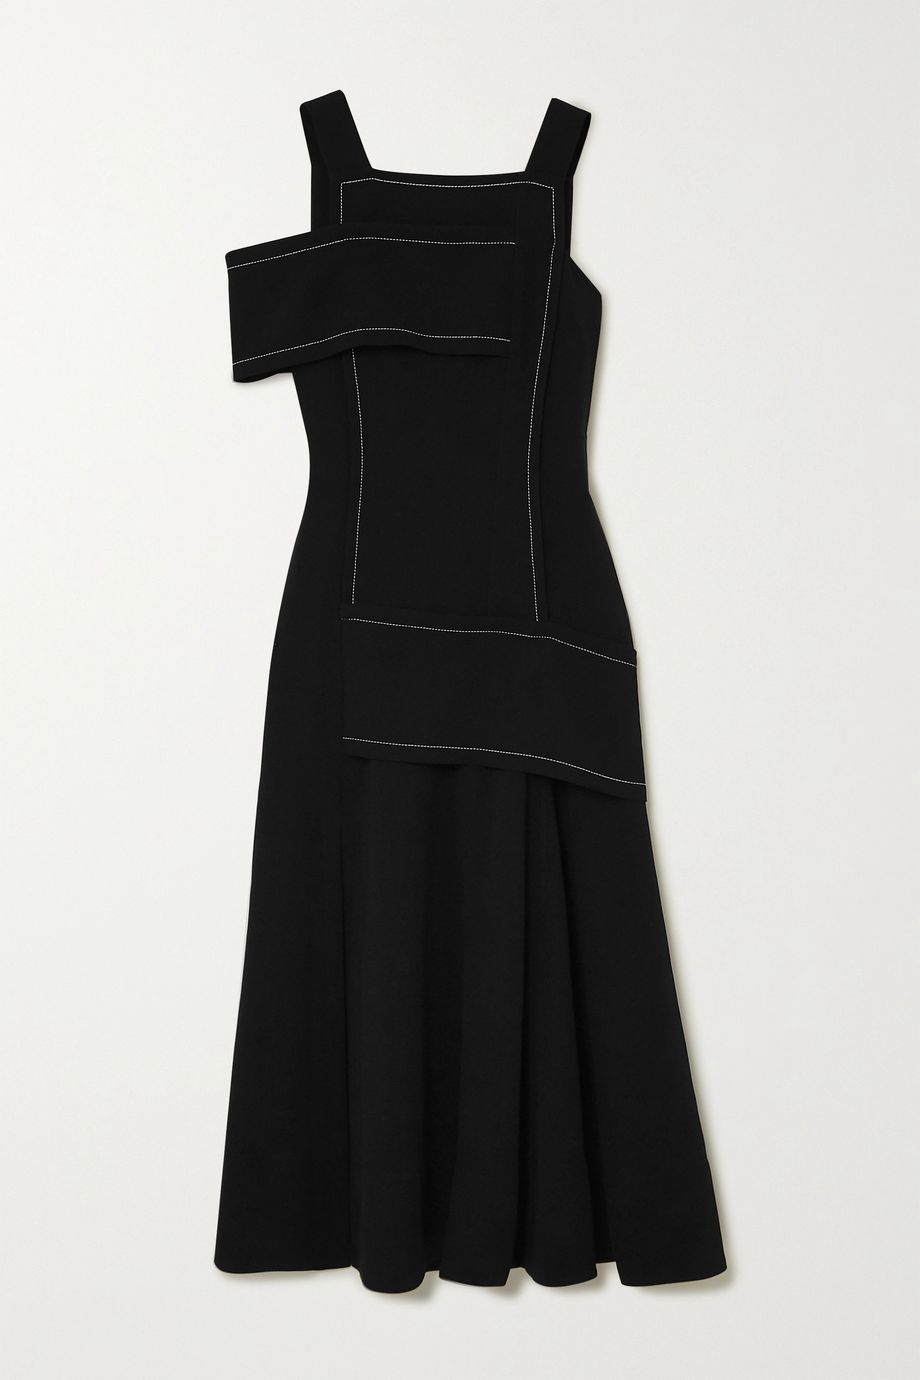 3.1 Phillip Lim One-shoulder paneled crepe maxi dress